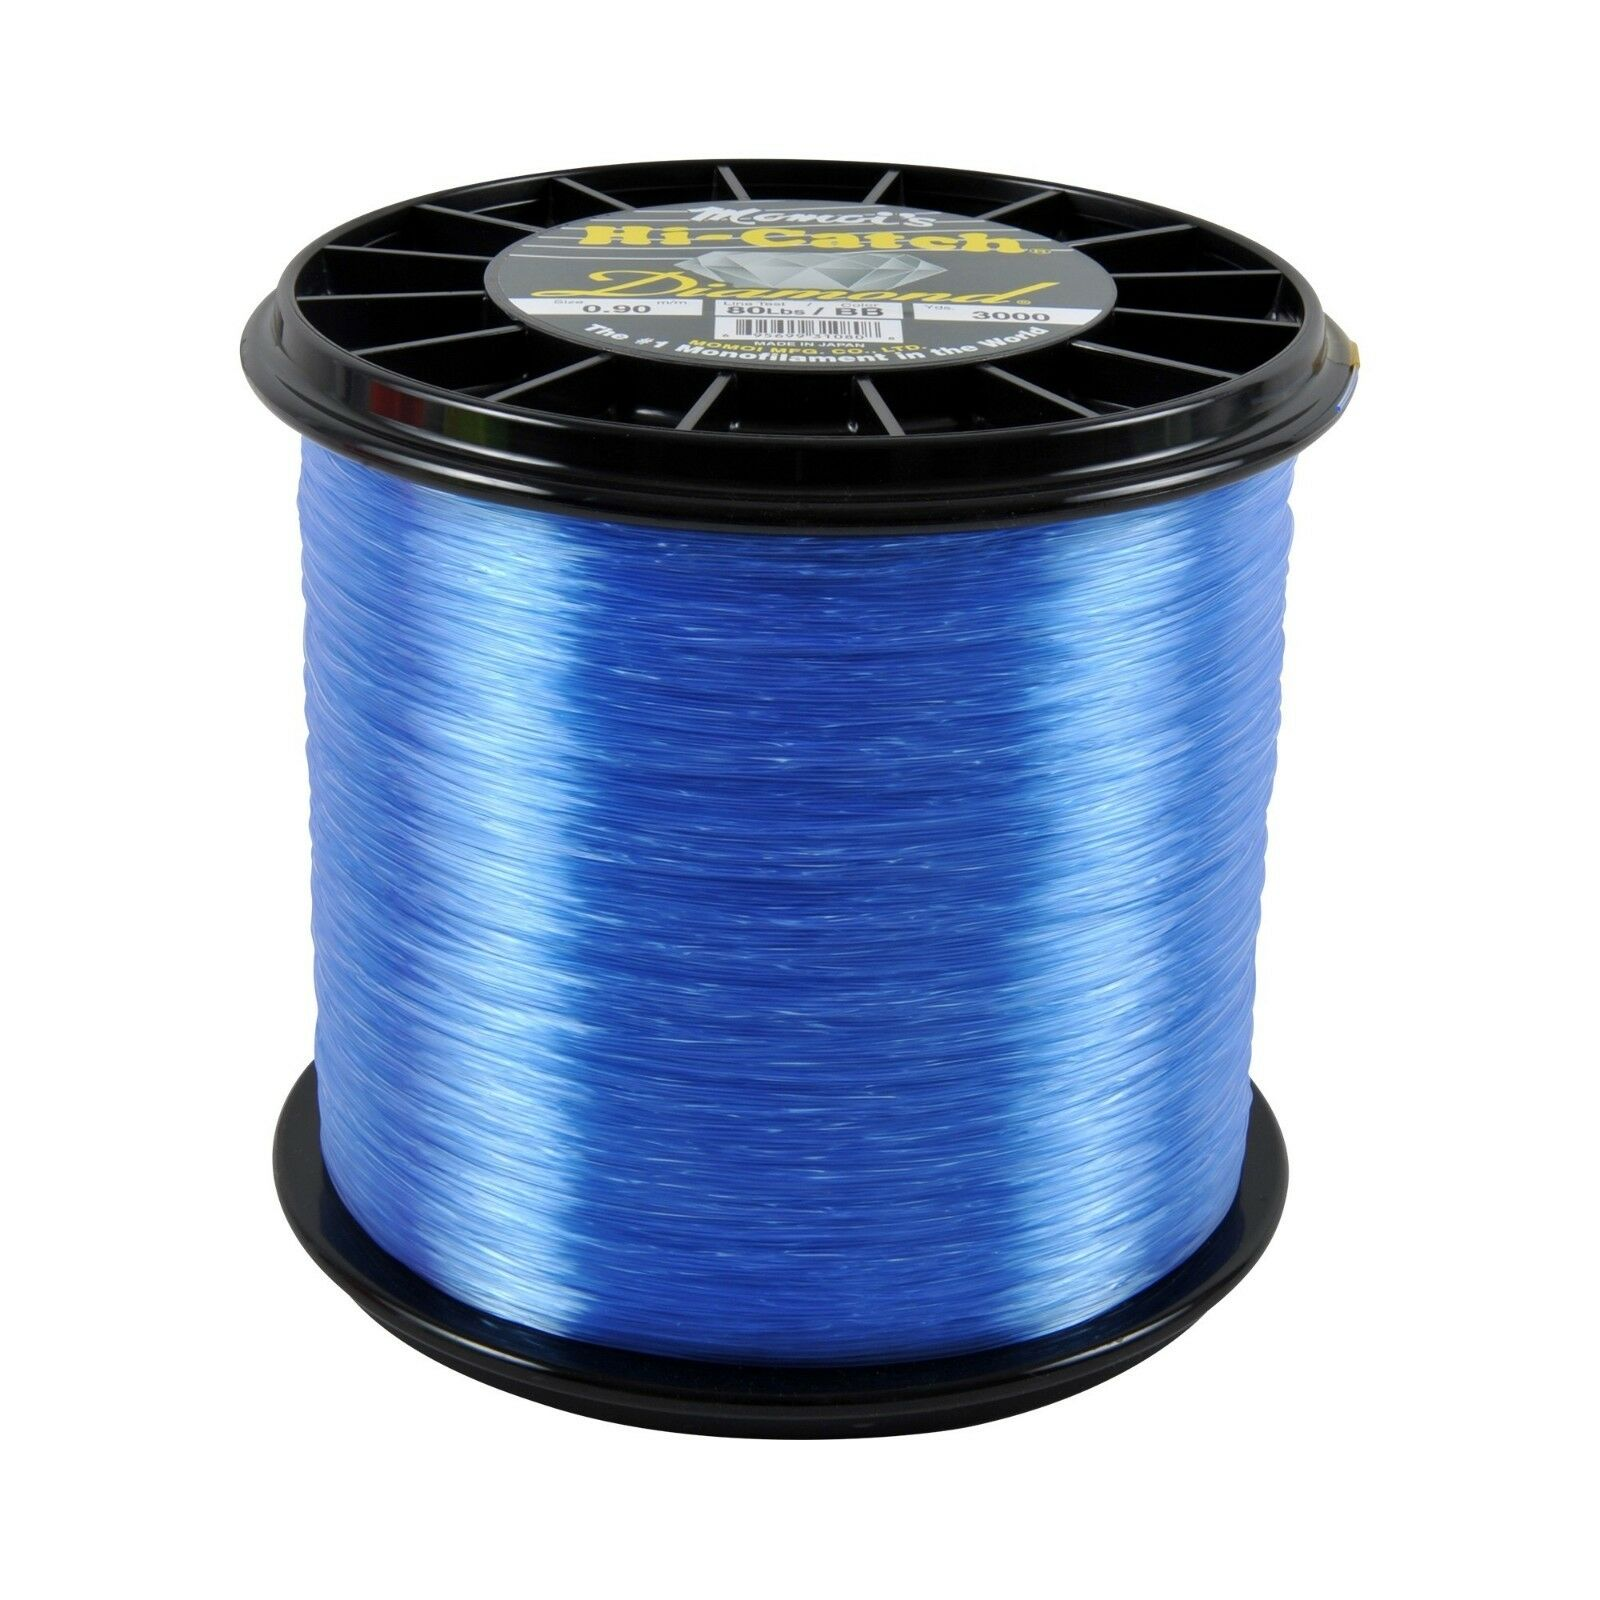 Momoi Diamond Monofilament Fishing Line 3000 Yards - Brilliant bluee - Free Ship